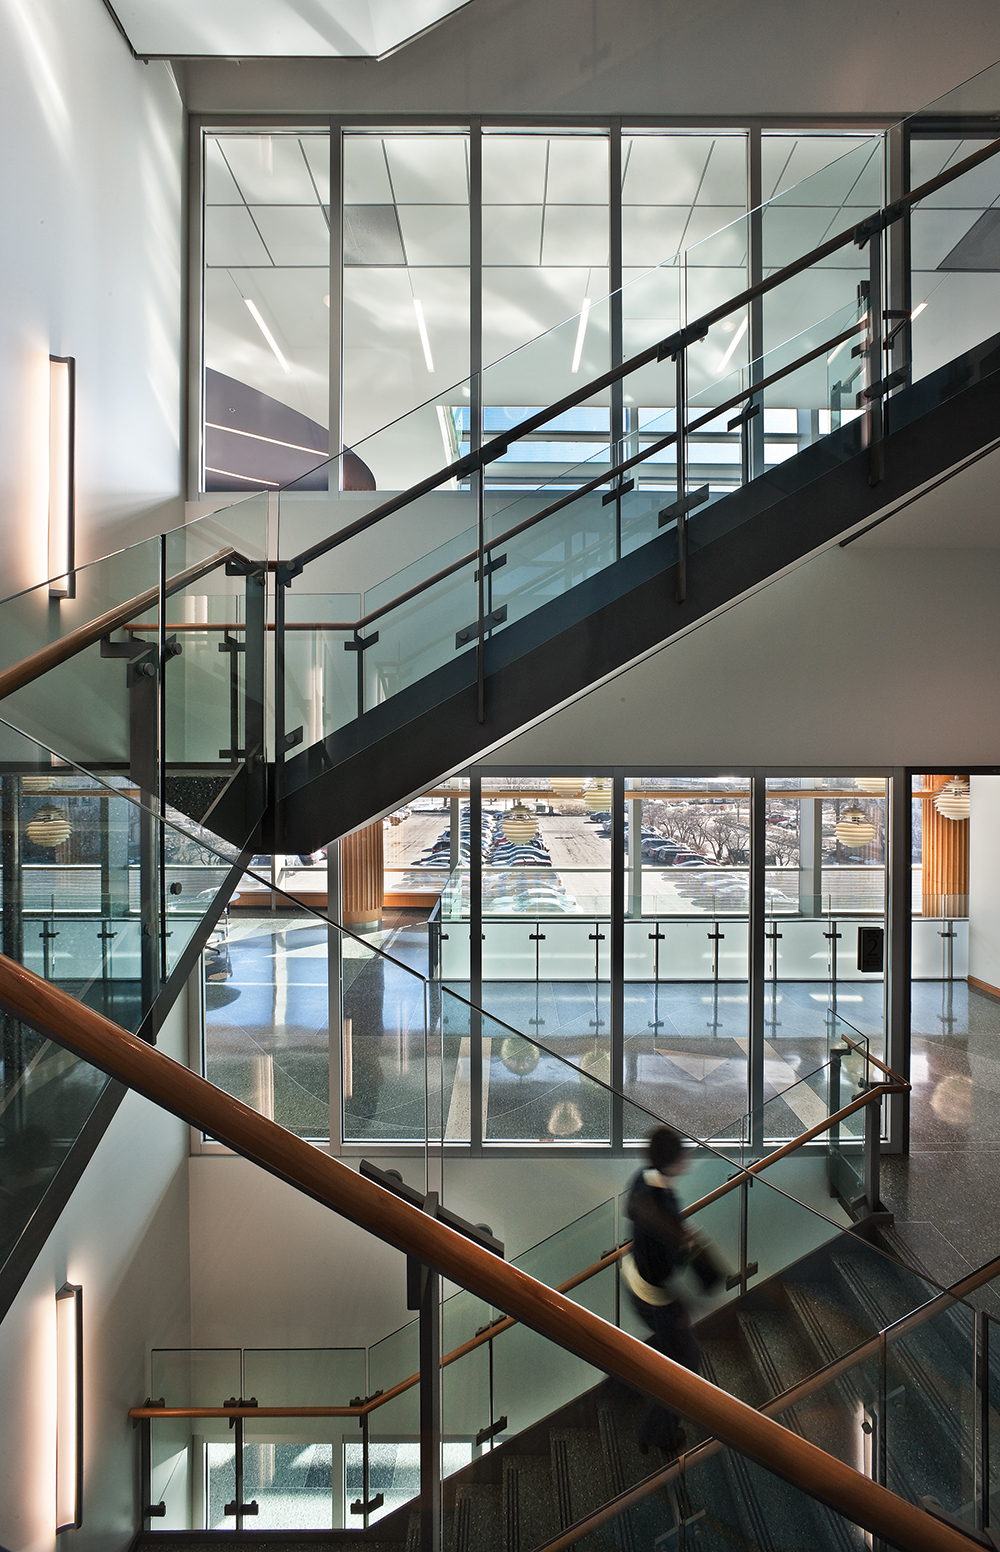 Ether linear sconces are perfect for education lighting applications, seen here in a modern campus stairwell.